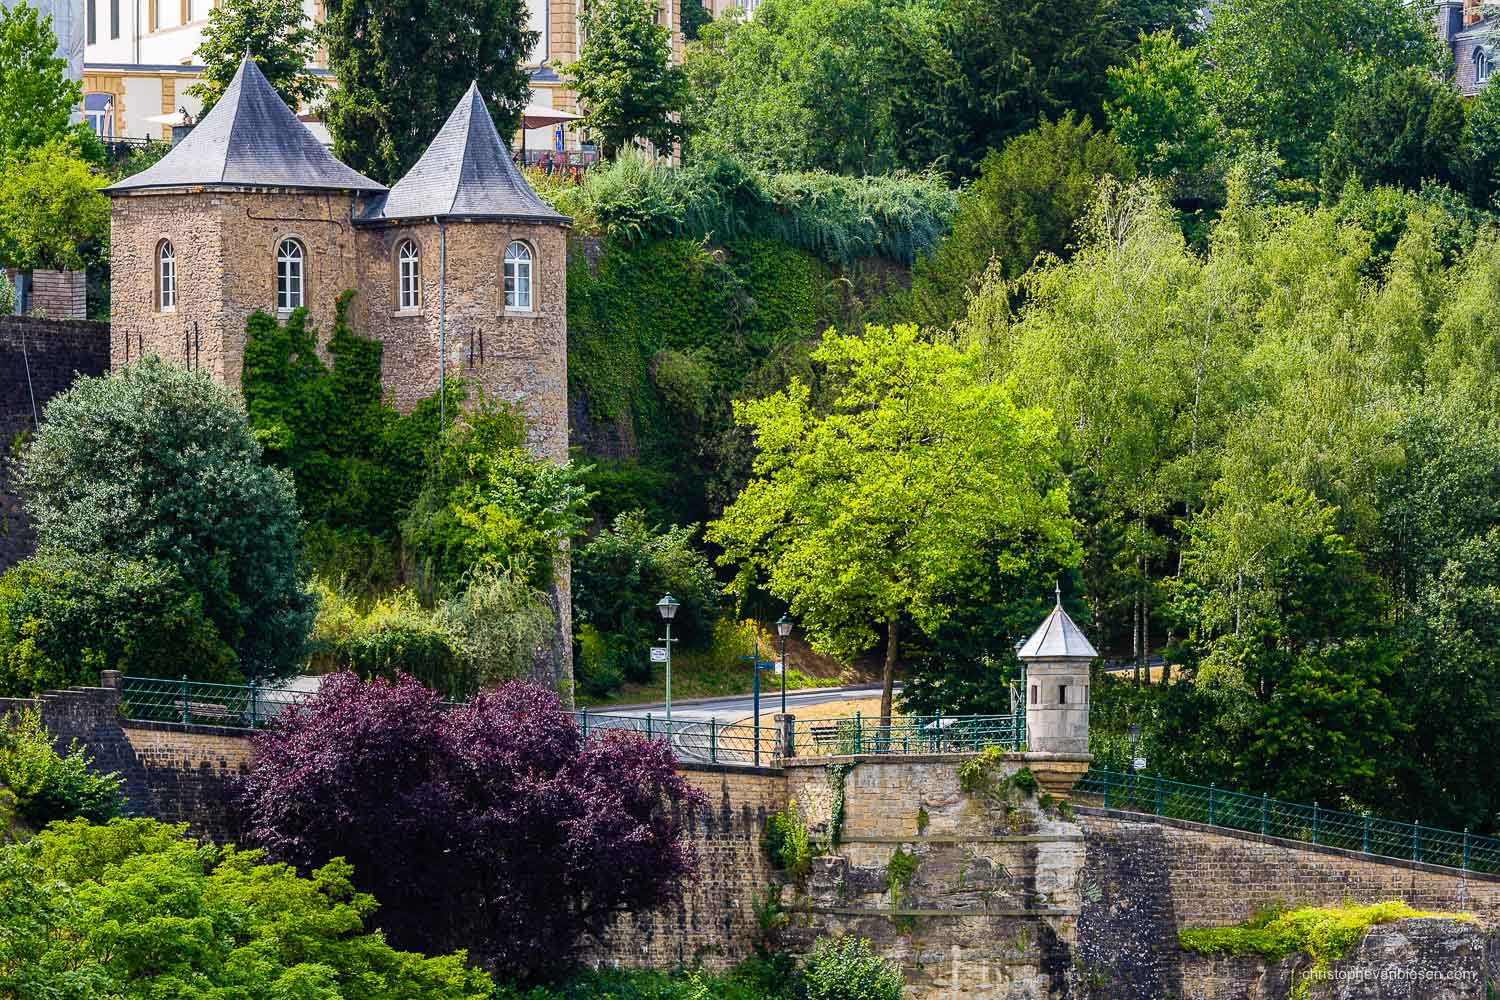 Summer in Luxembourg - Luxembourg city's Three Towers and one of the Spanish Towers - The City's Watchtowers